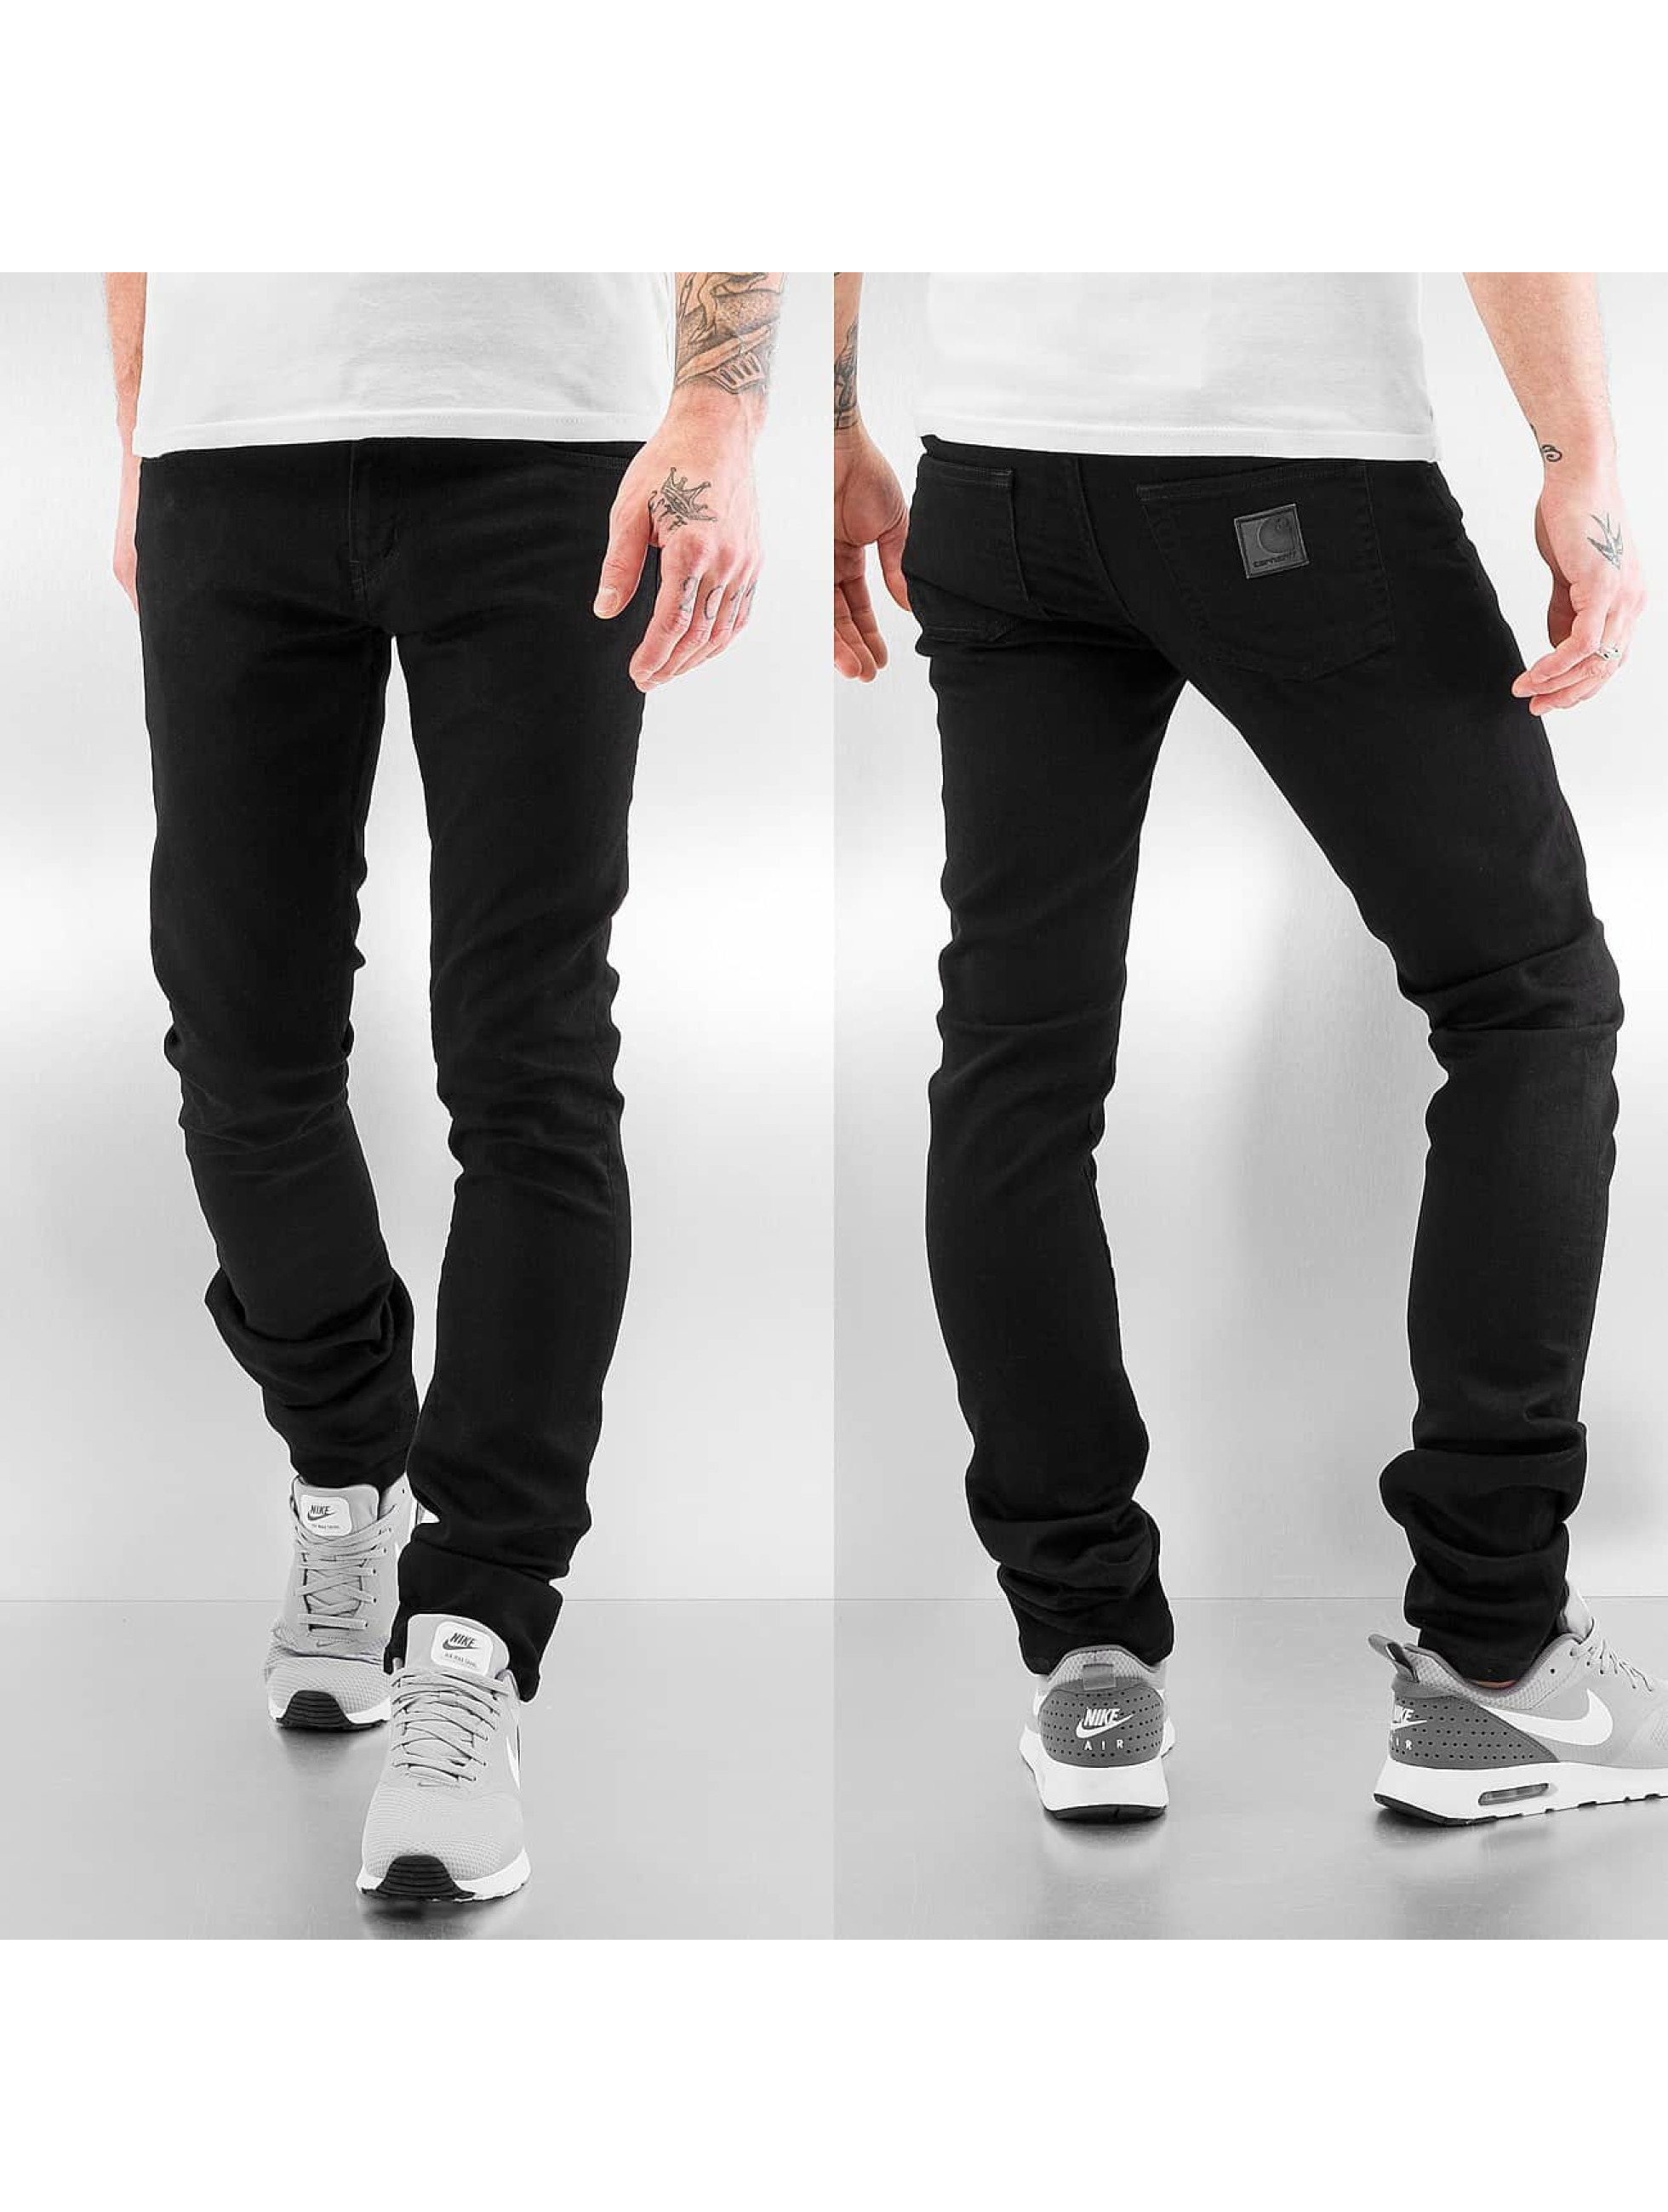 Carhartt WIP Towner Rebel Slim Tapered Fit Jeans Black Rinsed Sale Angebote Ruhland